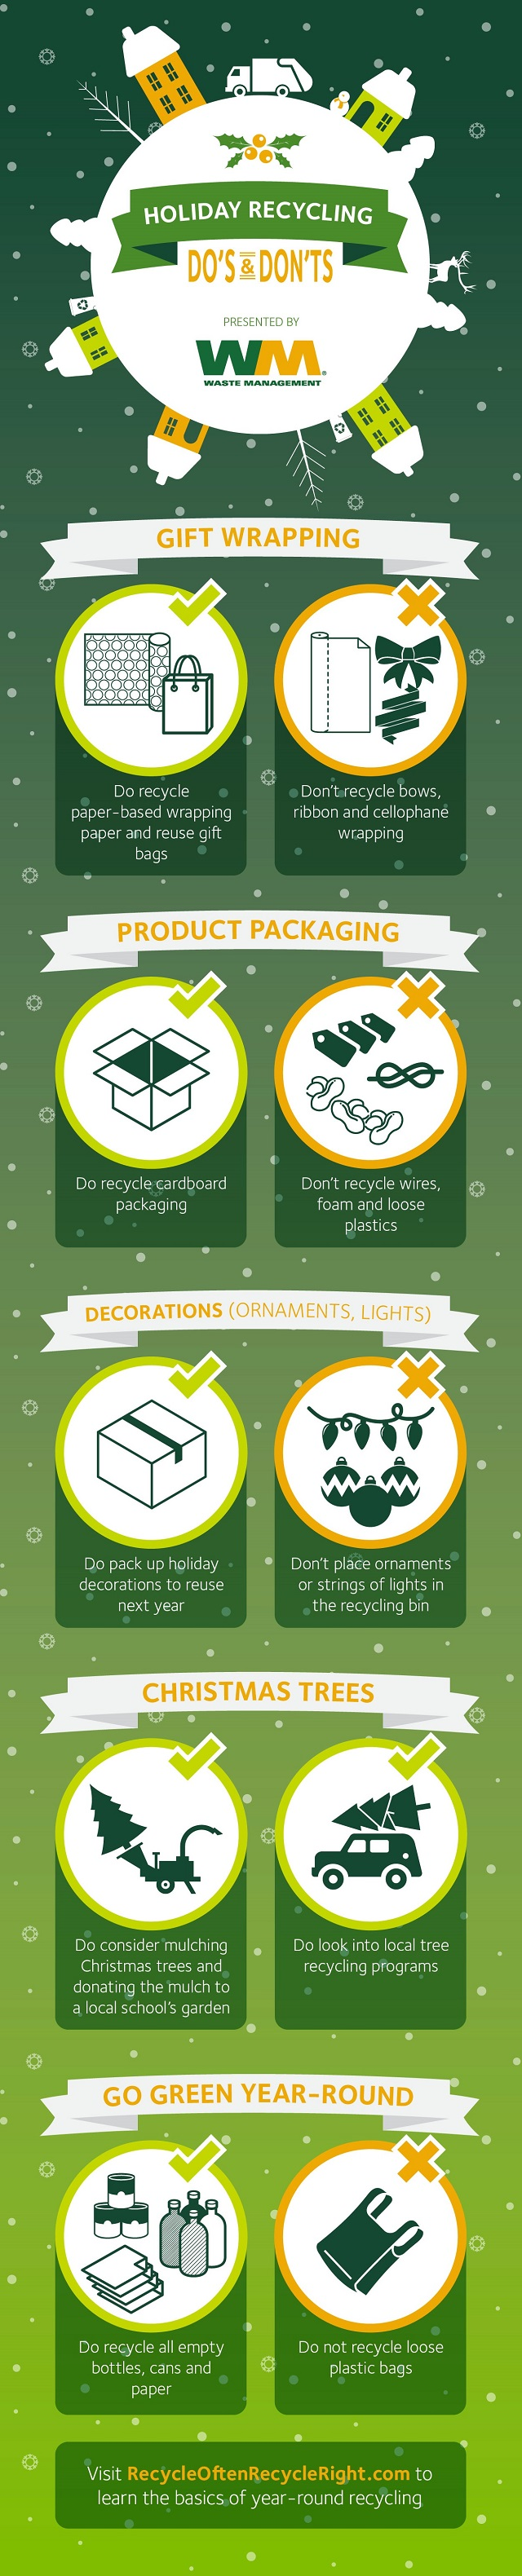 Holiday Waste Management Infographic